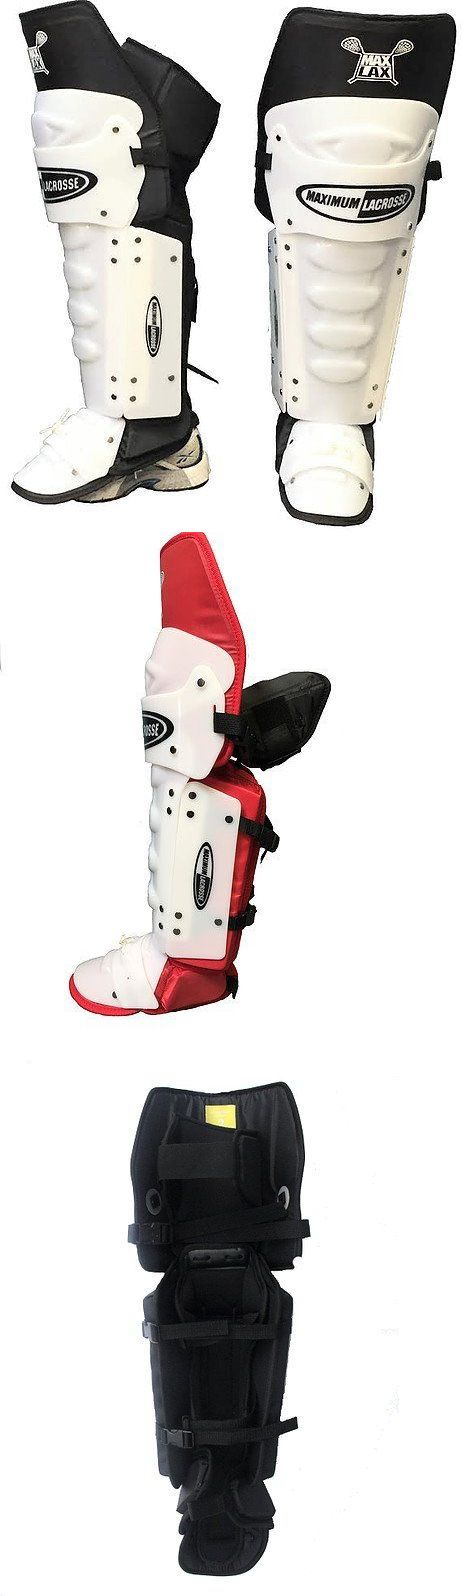 Protective Gear 62164: Maximum Lacrosse Box Goalie Shin Pads Cat 3 Mx-Sp-1000 Box Indoor Arena -> BUY IT NOW ONLY: $239 on eBay!